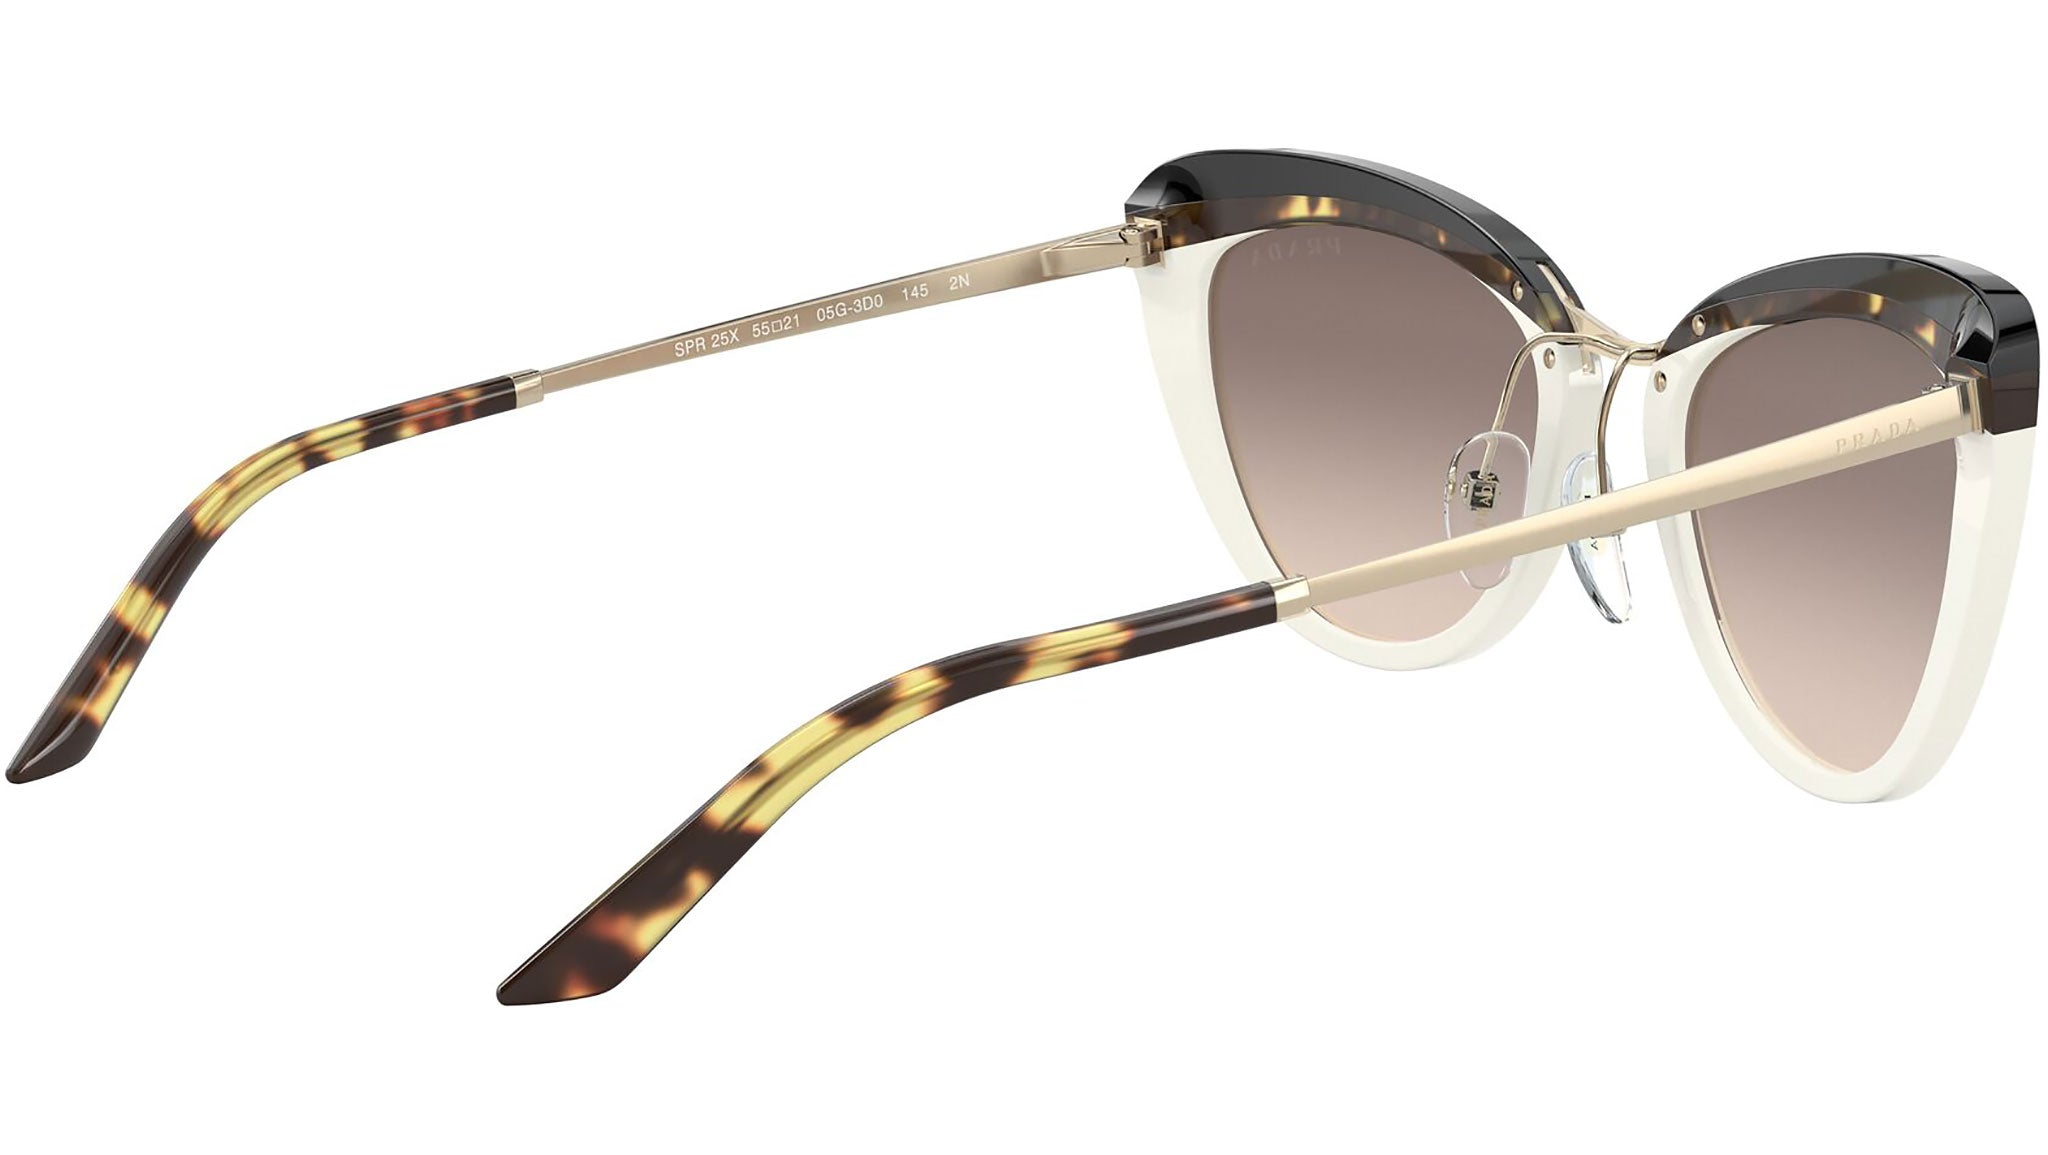 PR 25XS black and havana and ivory